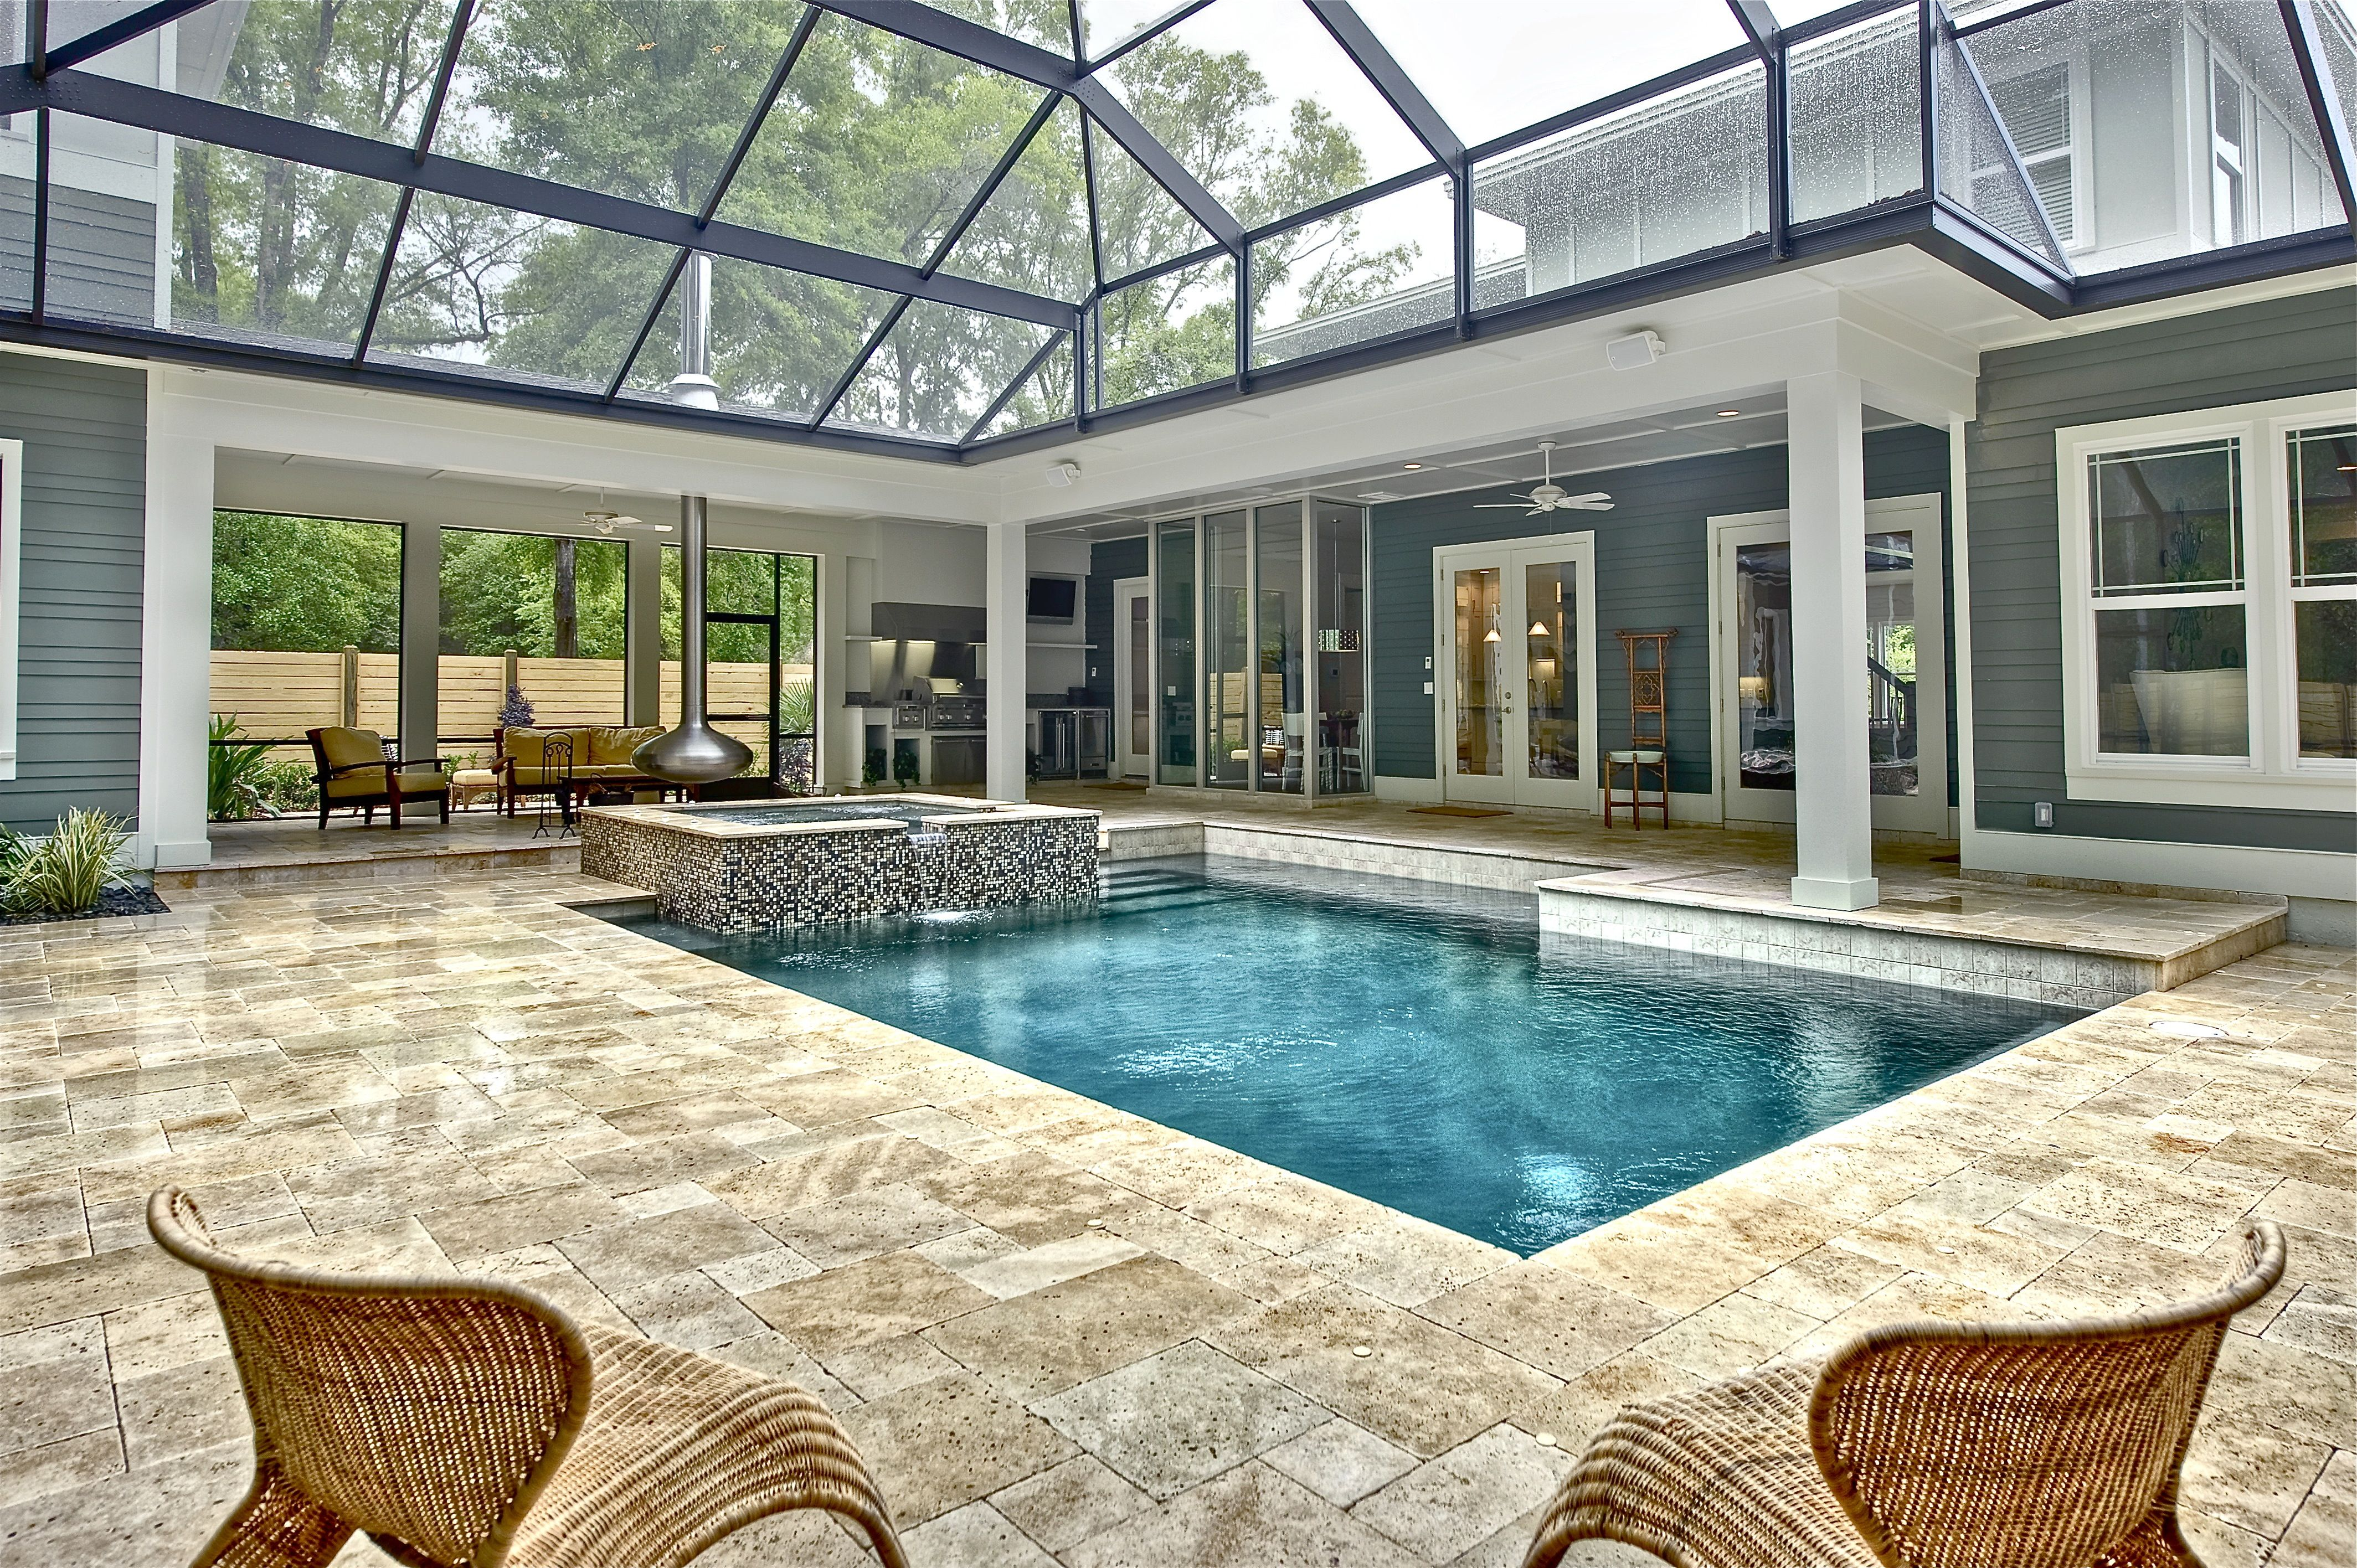 Indoor Pool   Glass Ceiling So That I Can Use It All Year Round